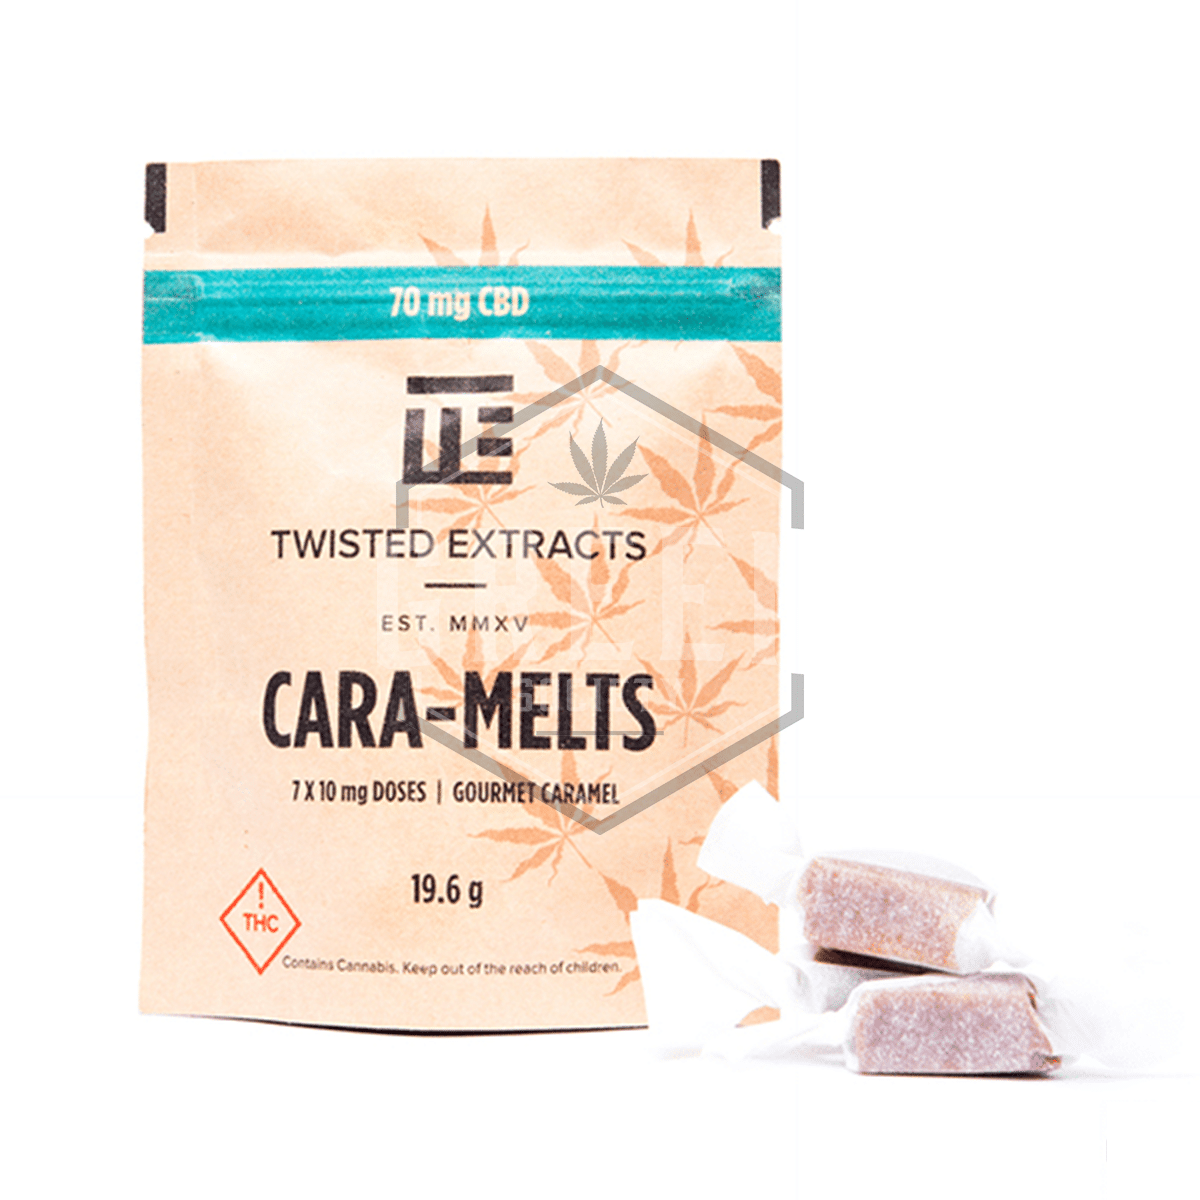 CBD Cara-Melts by Twisted Extracts by Green Society - Image © 2018 Green Society. All Rights Reserved.